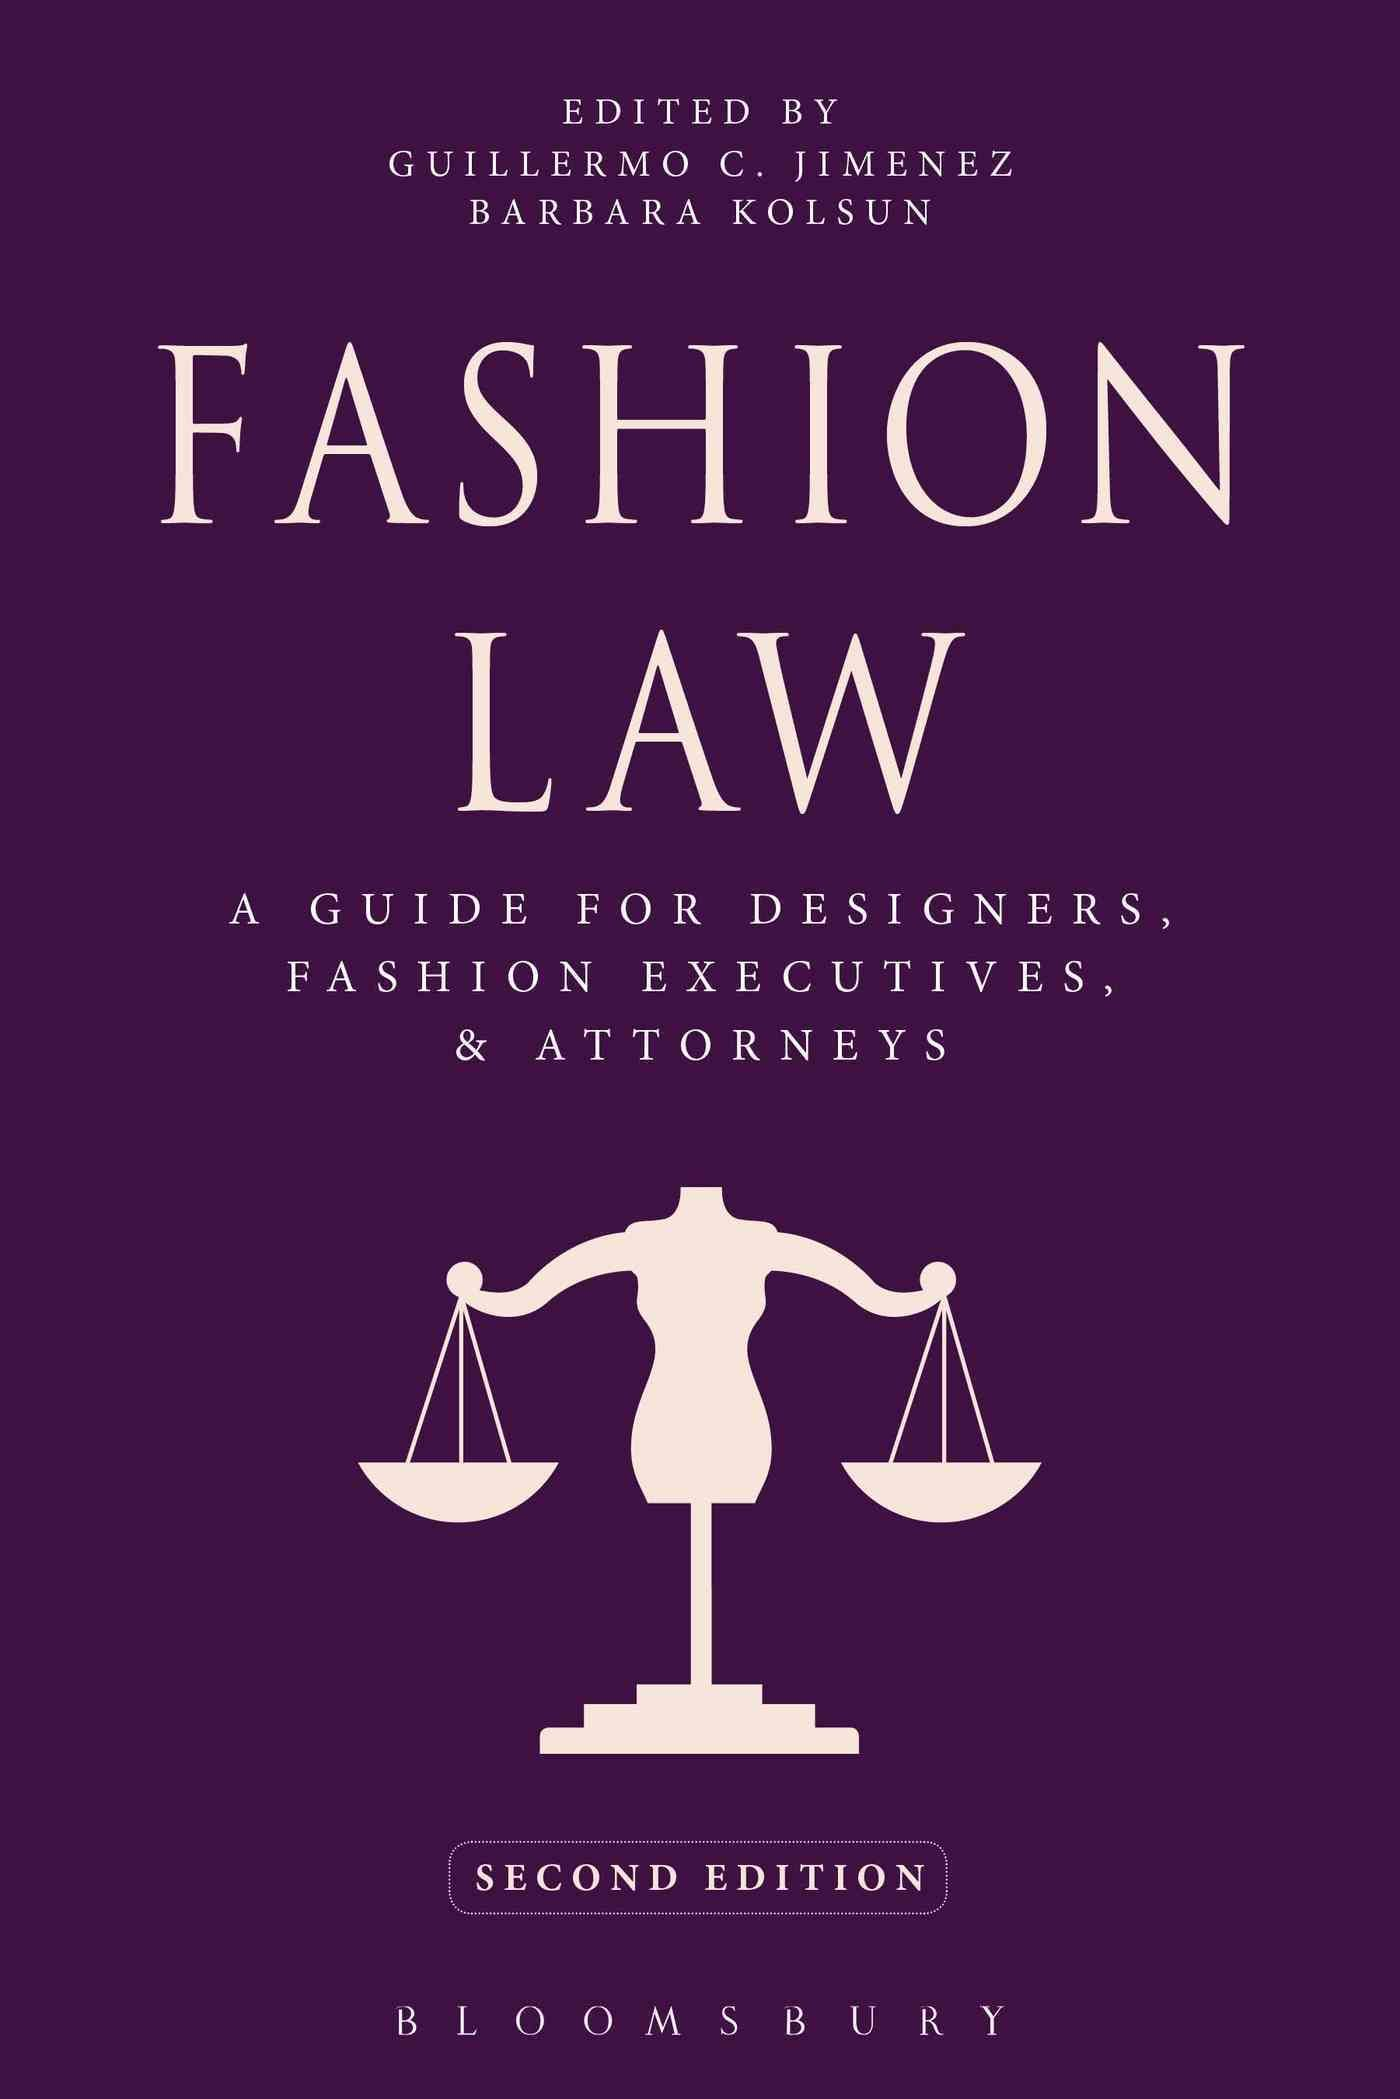 The revised Second Edition of Fashion Law provides